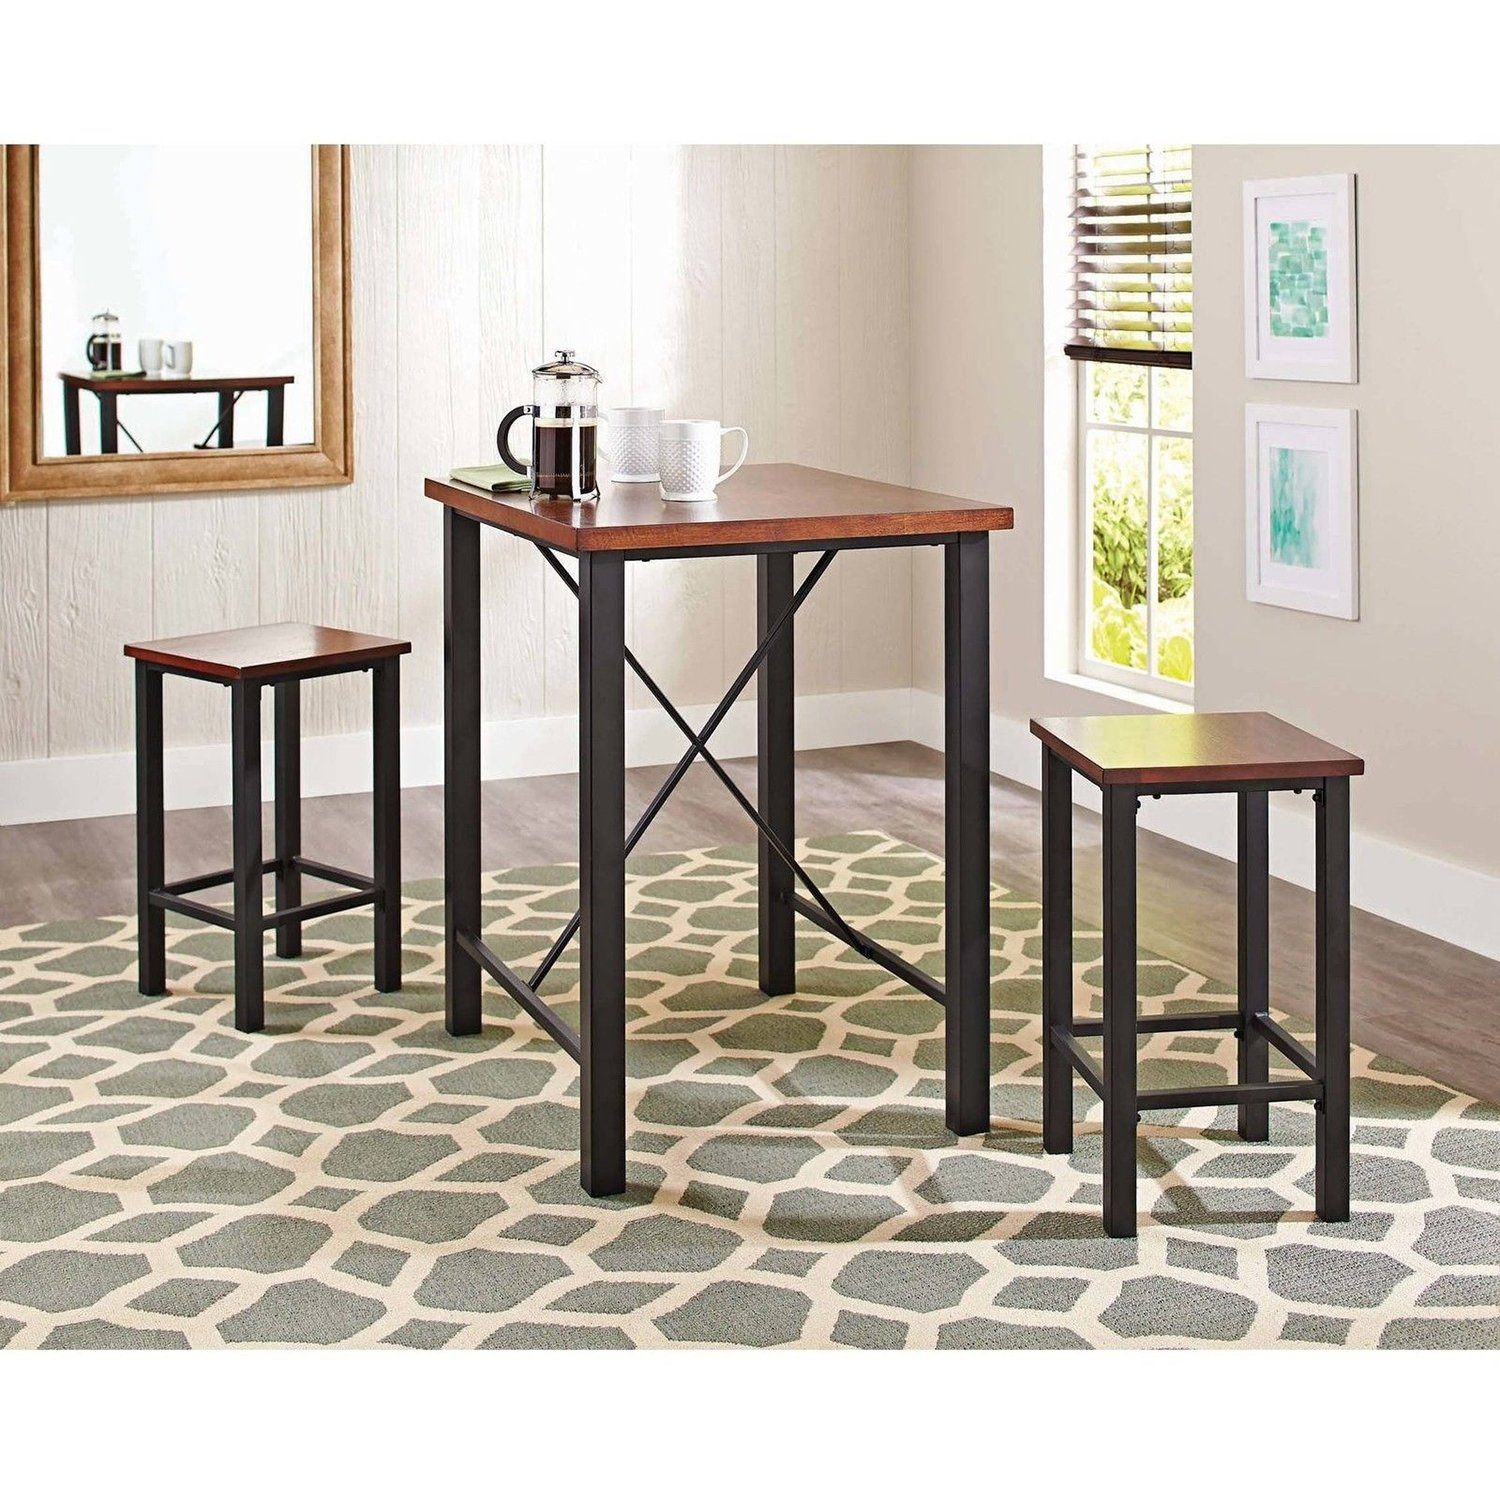 Amazon Gracelove Dinette Sets For Small Spaces Pub Table Set 3